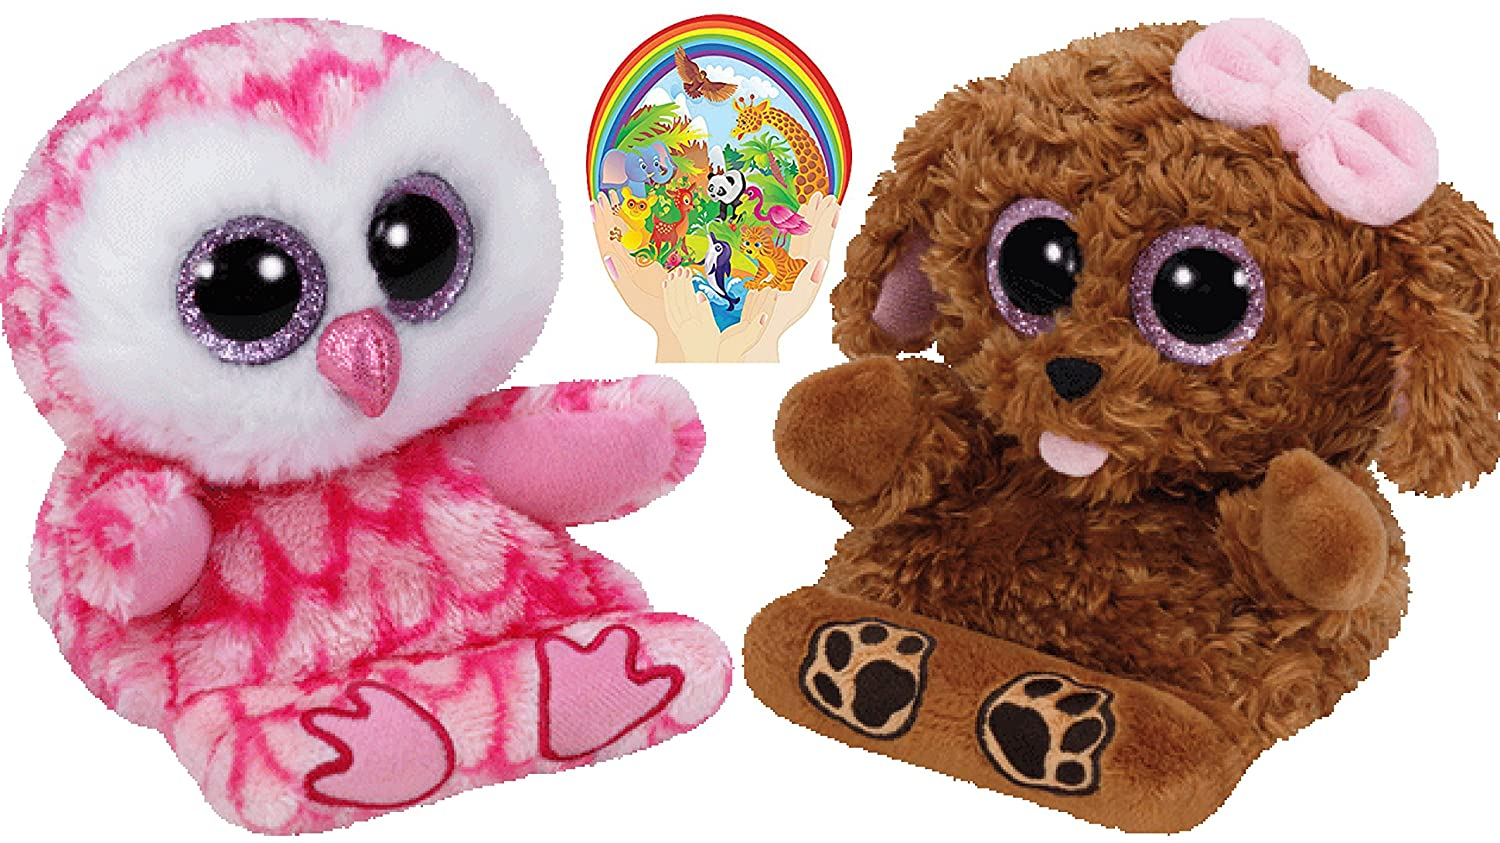 Ty Beanie Peek-a-Boos Dog ZELDA and Owl MILLY Set of 2 Smartphone holders  with Bonus Animals Sticker: Amazon.co.uk: Toys & Games